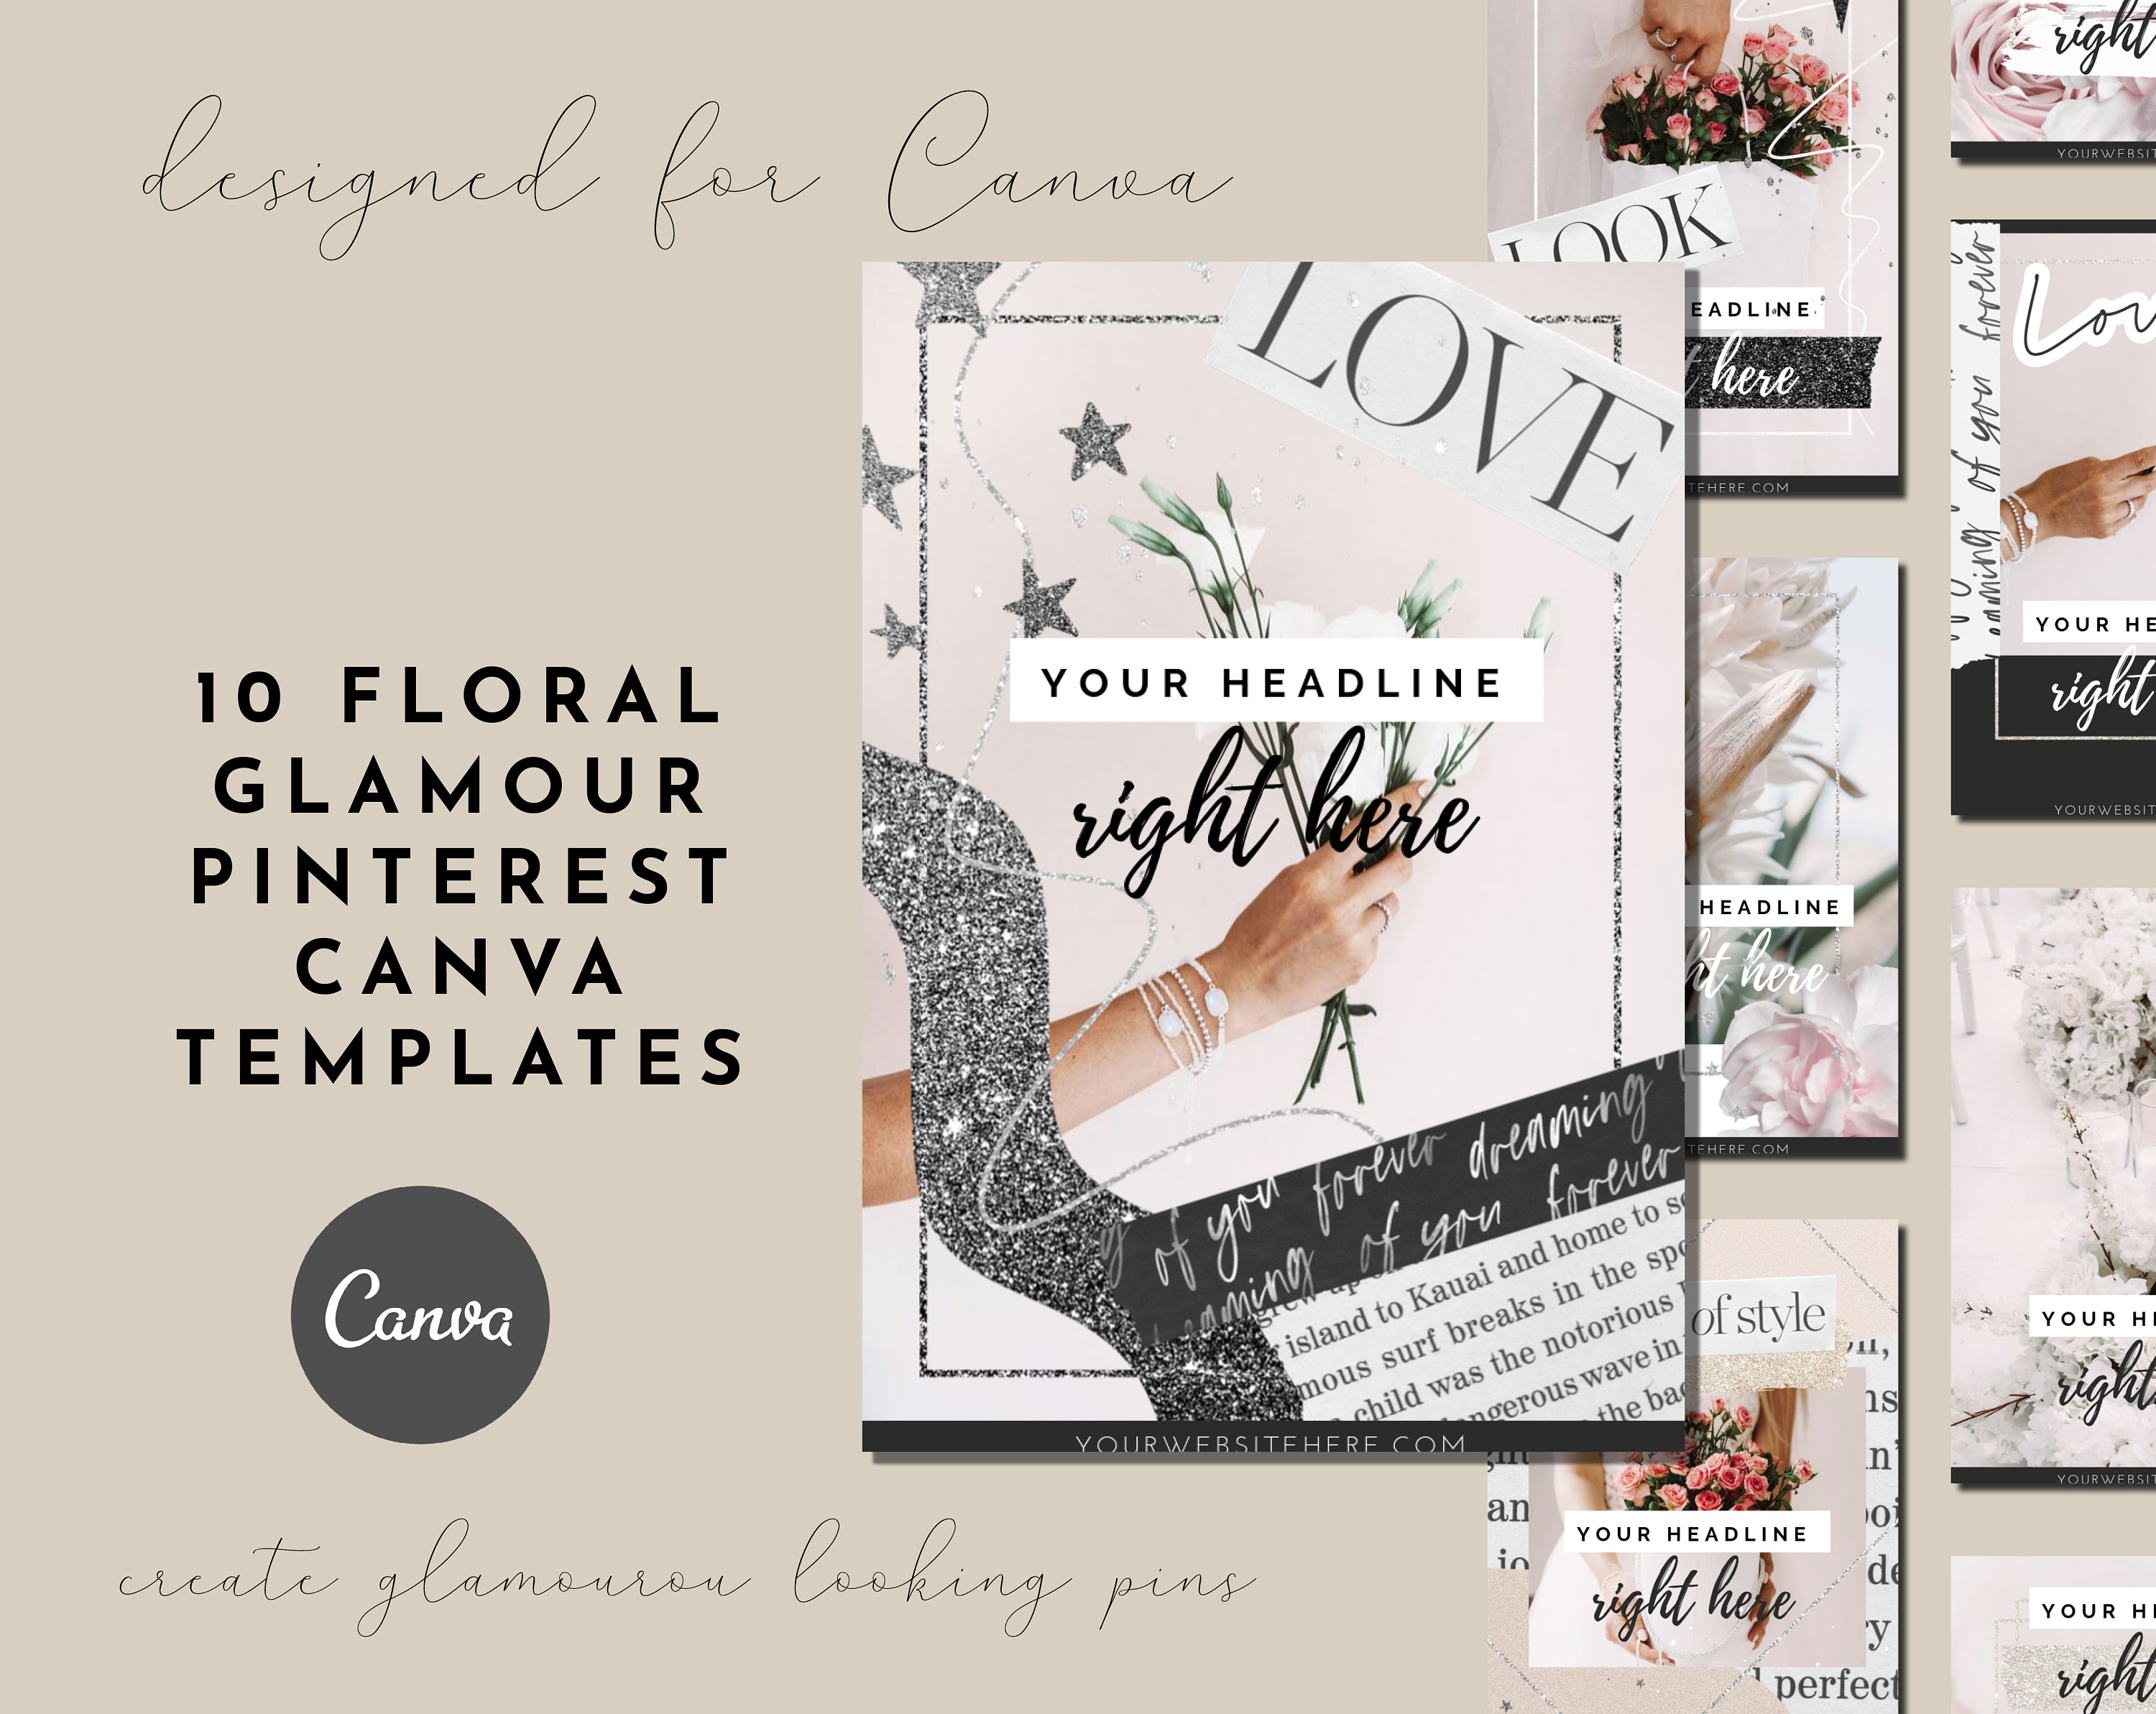 10 Floral Pink Glamour Pinterest Canva Templates